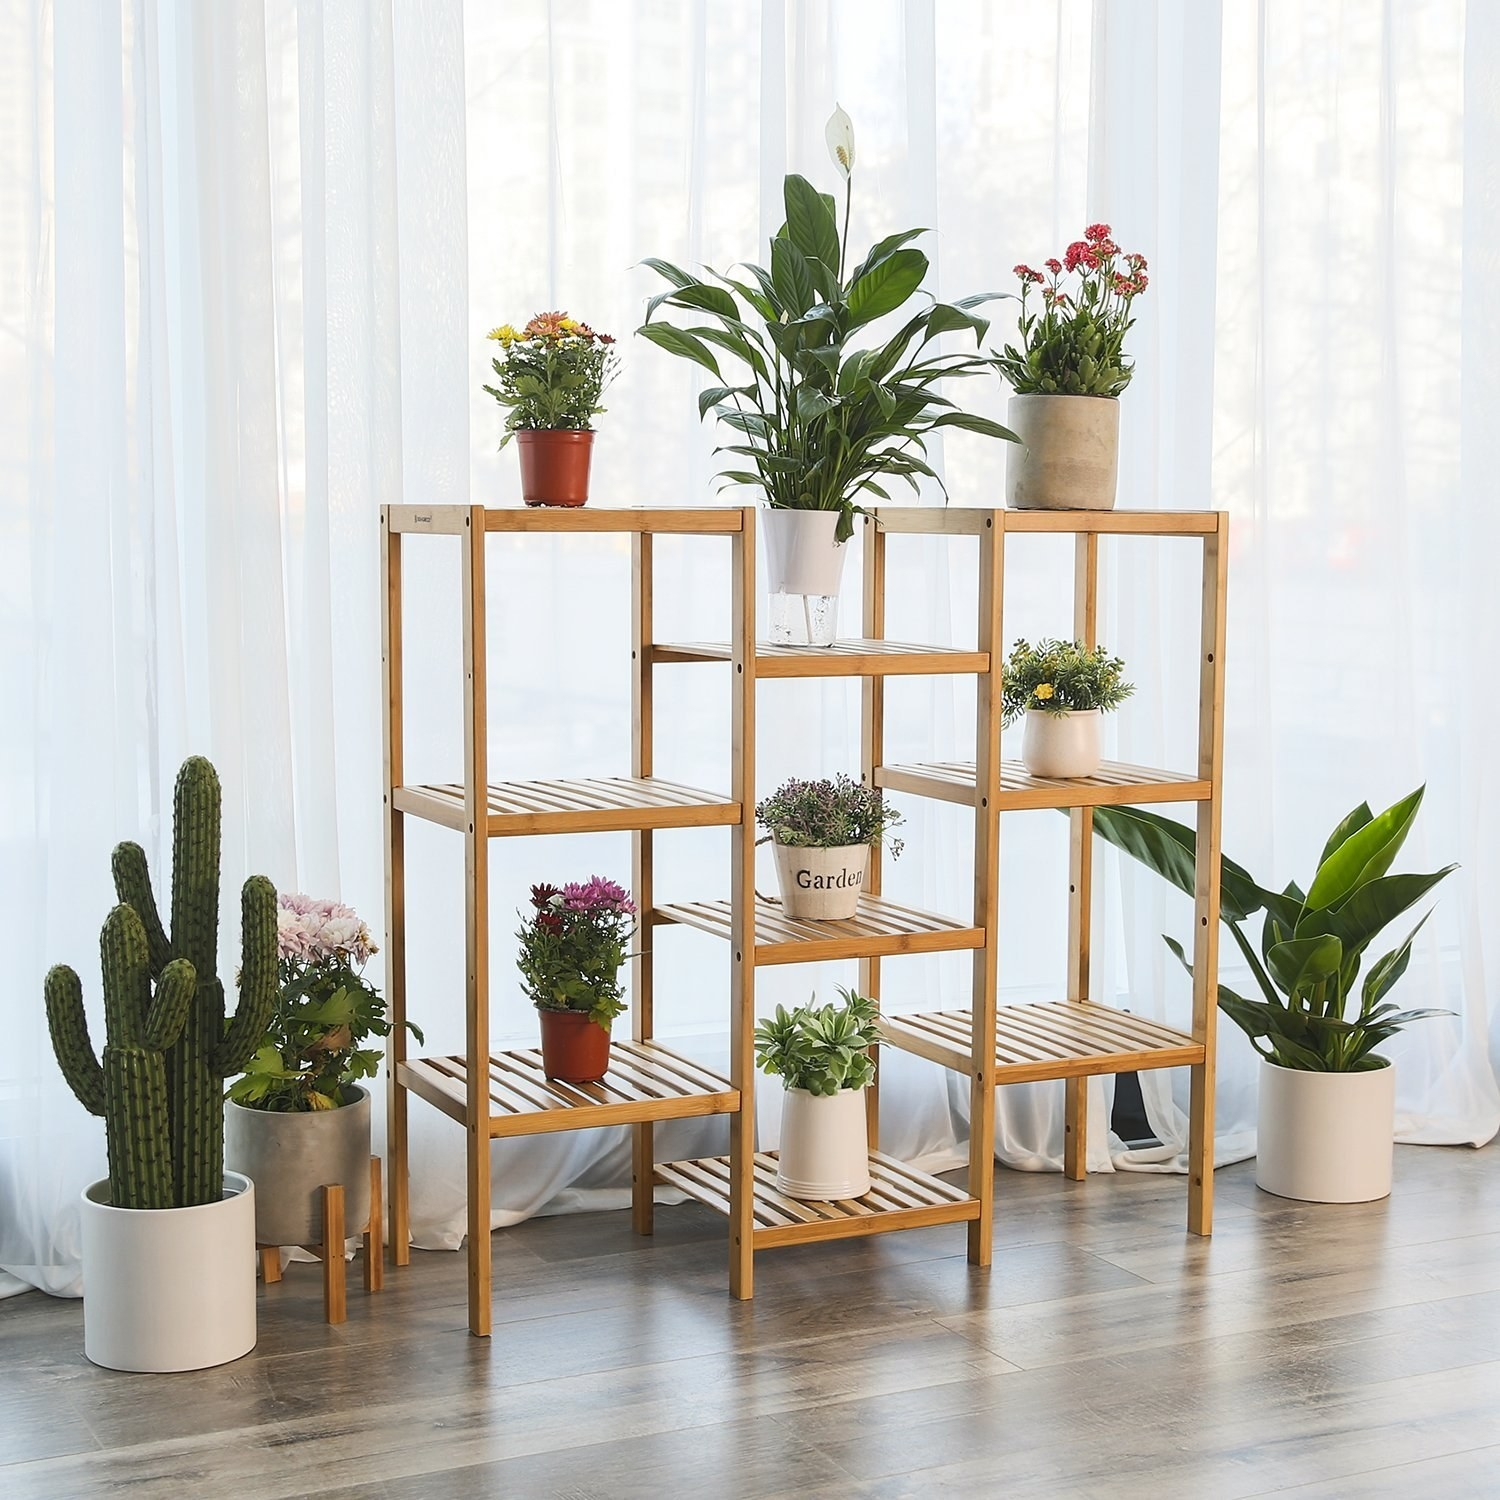 The bamboo plant stand